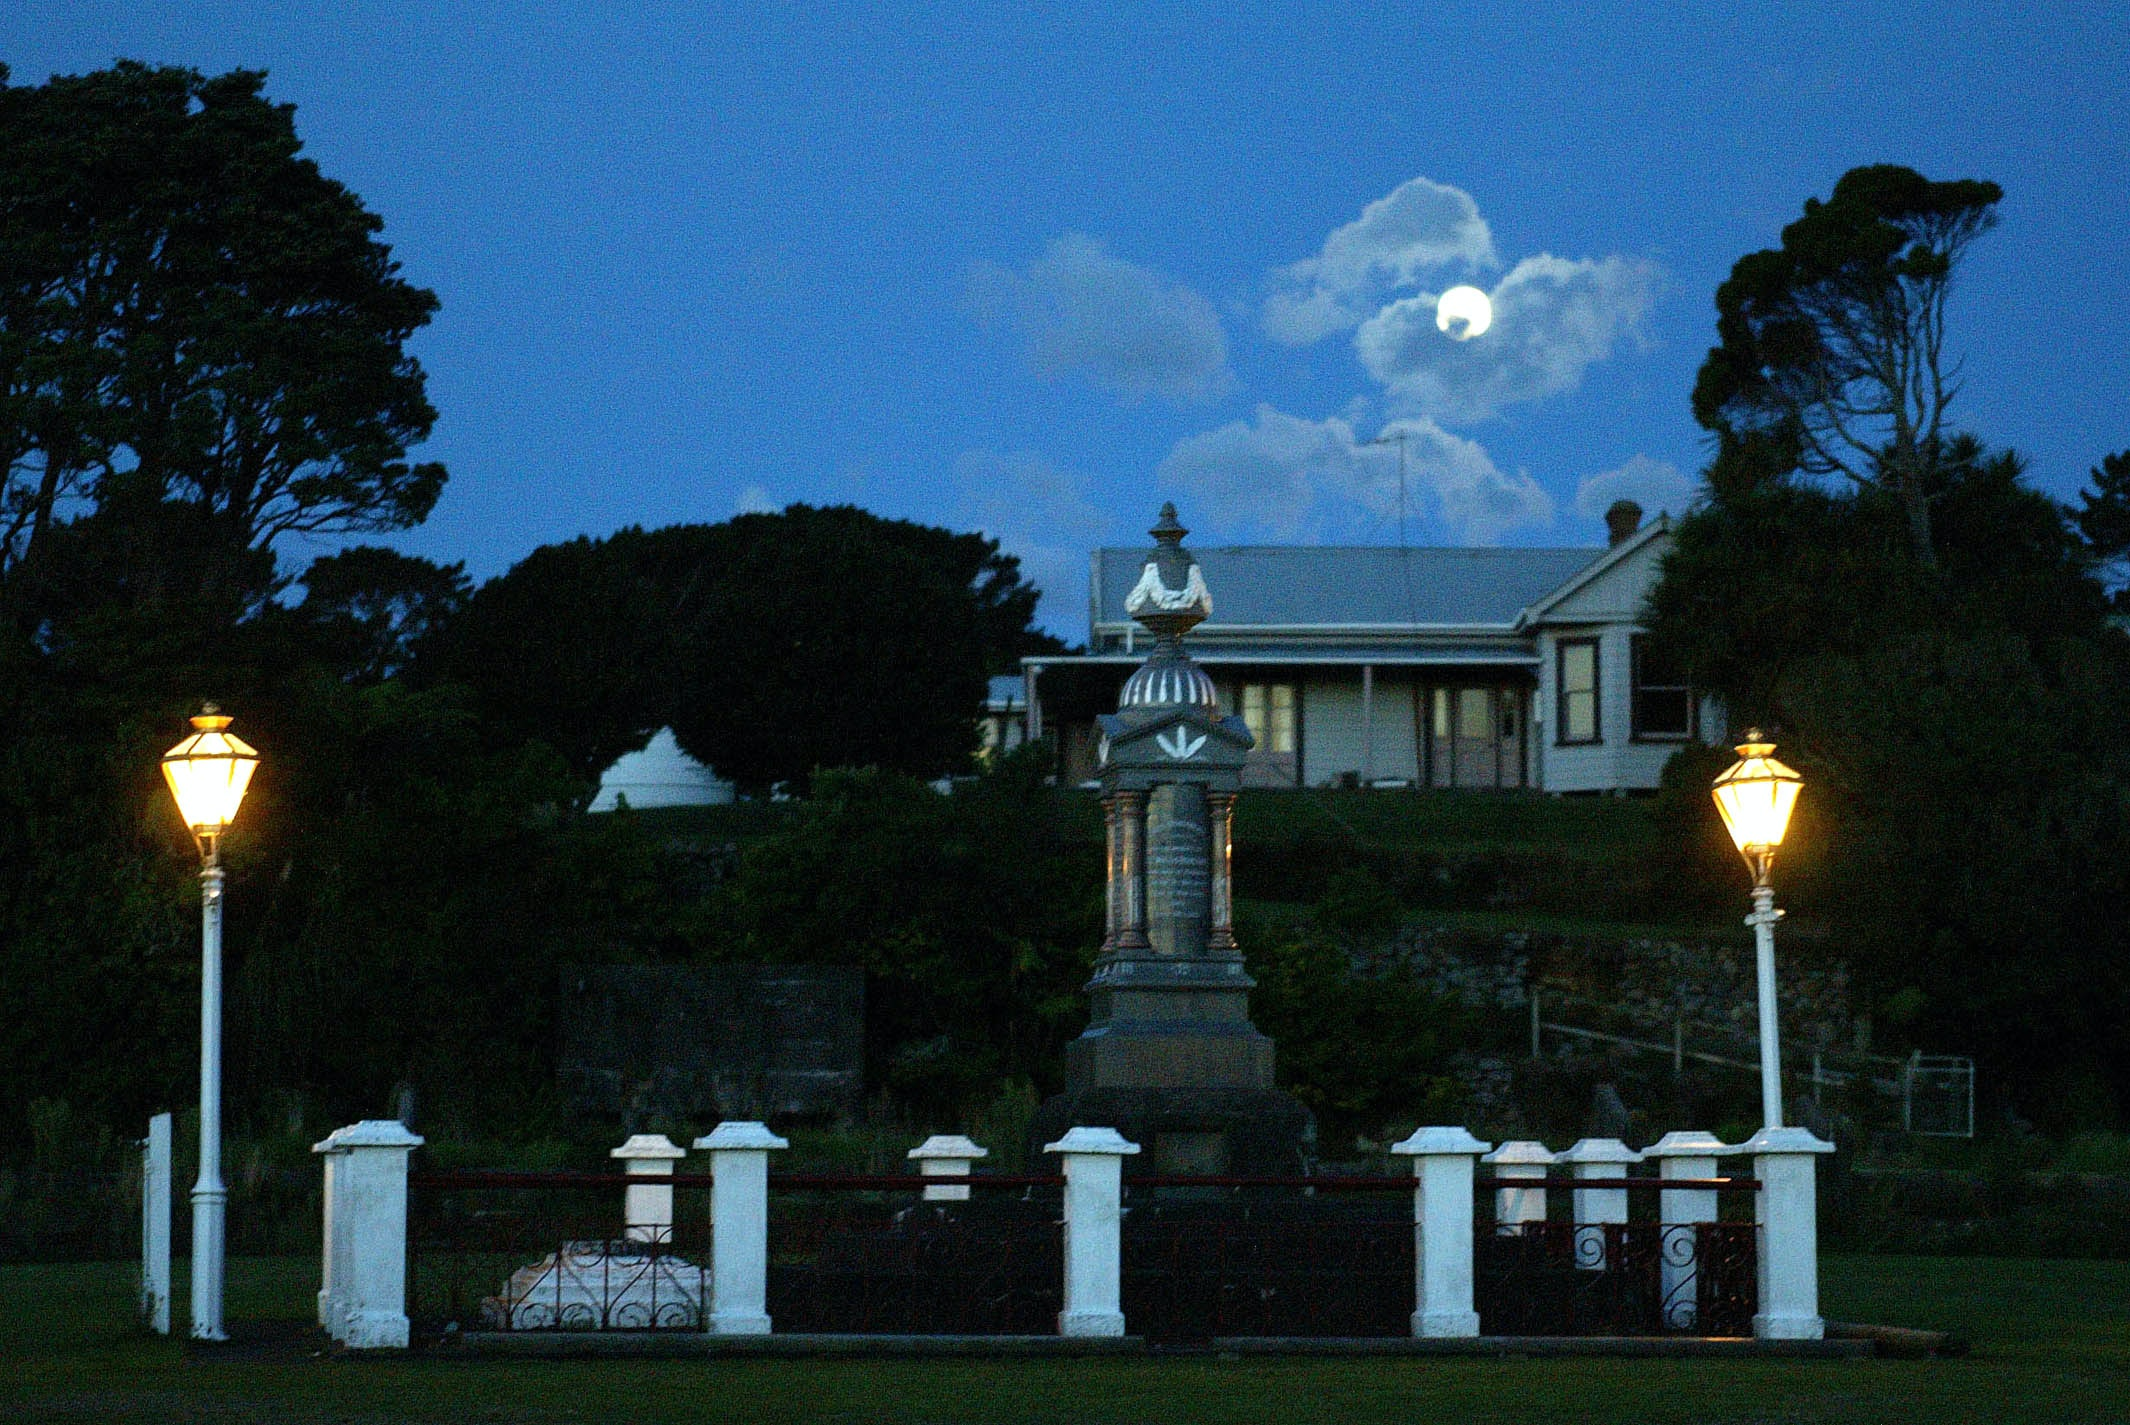 Burial place of Parihaka founder Te Whiti with moon rising above